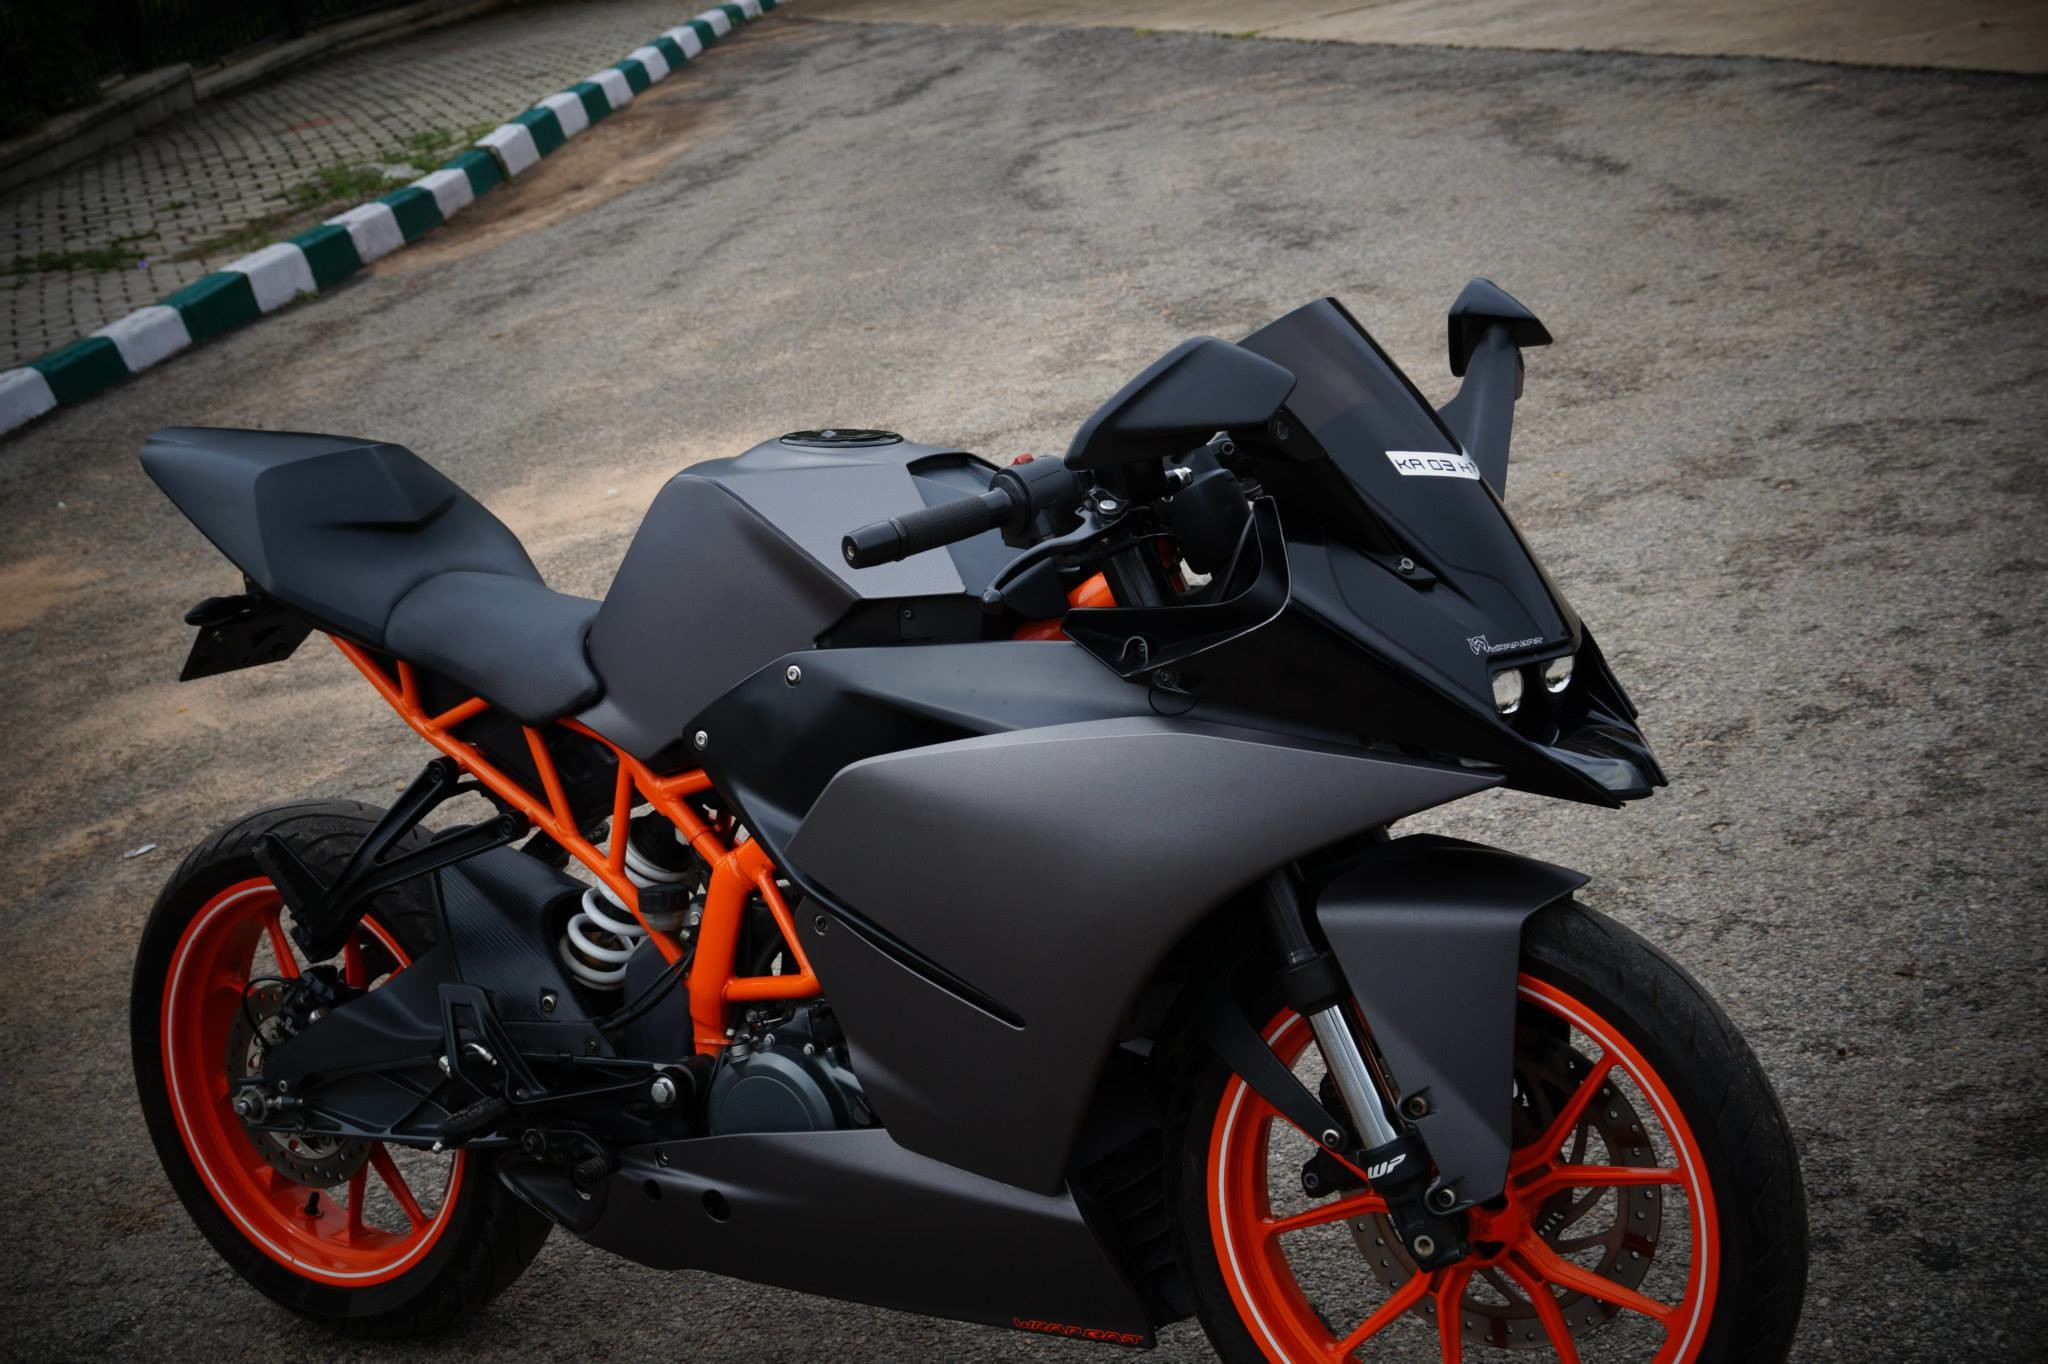 Ktm Rc390 Charcoal Grey Wrap By Wrapcraft Data Src Ktm Rc 200 Hd Images Download 2048x1364 Wallpaper Teahub Io